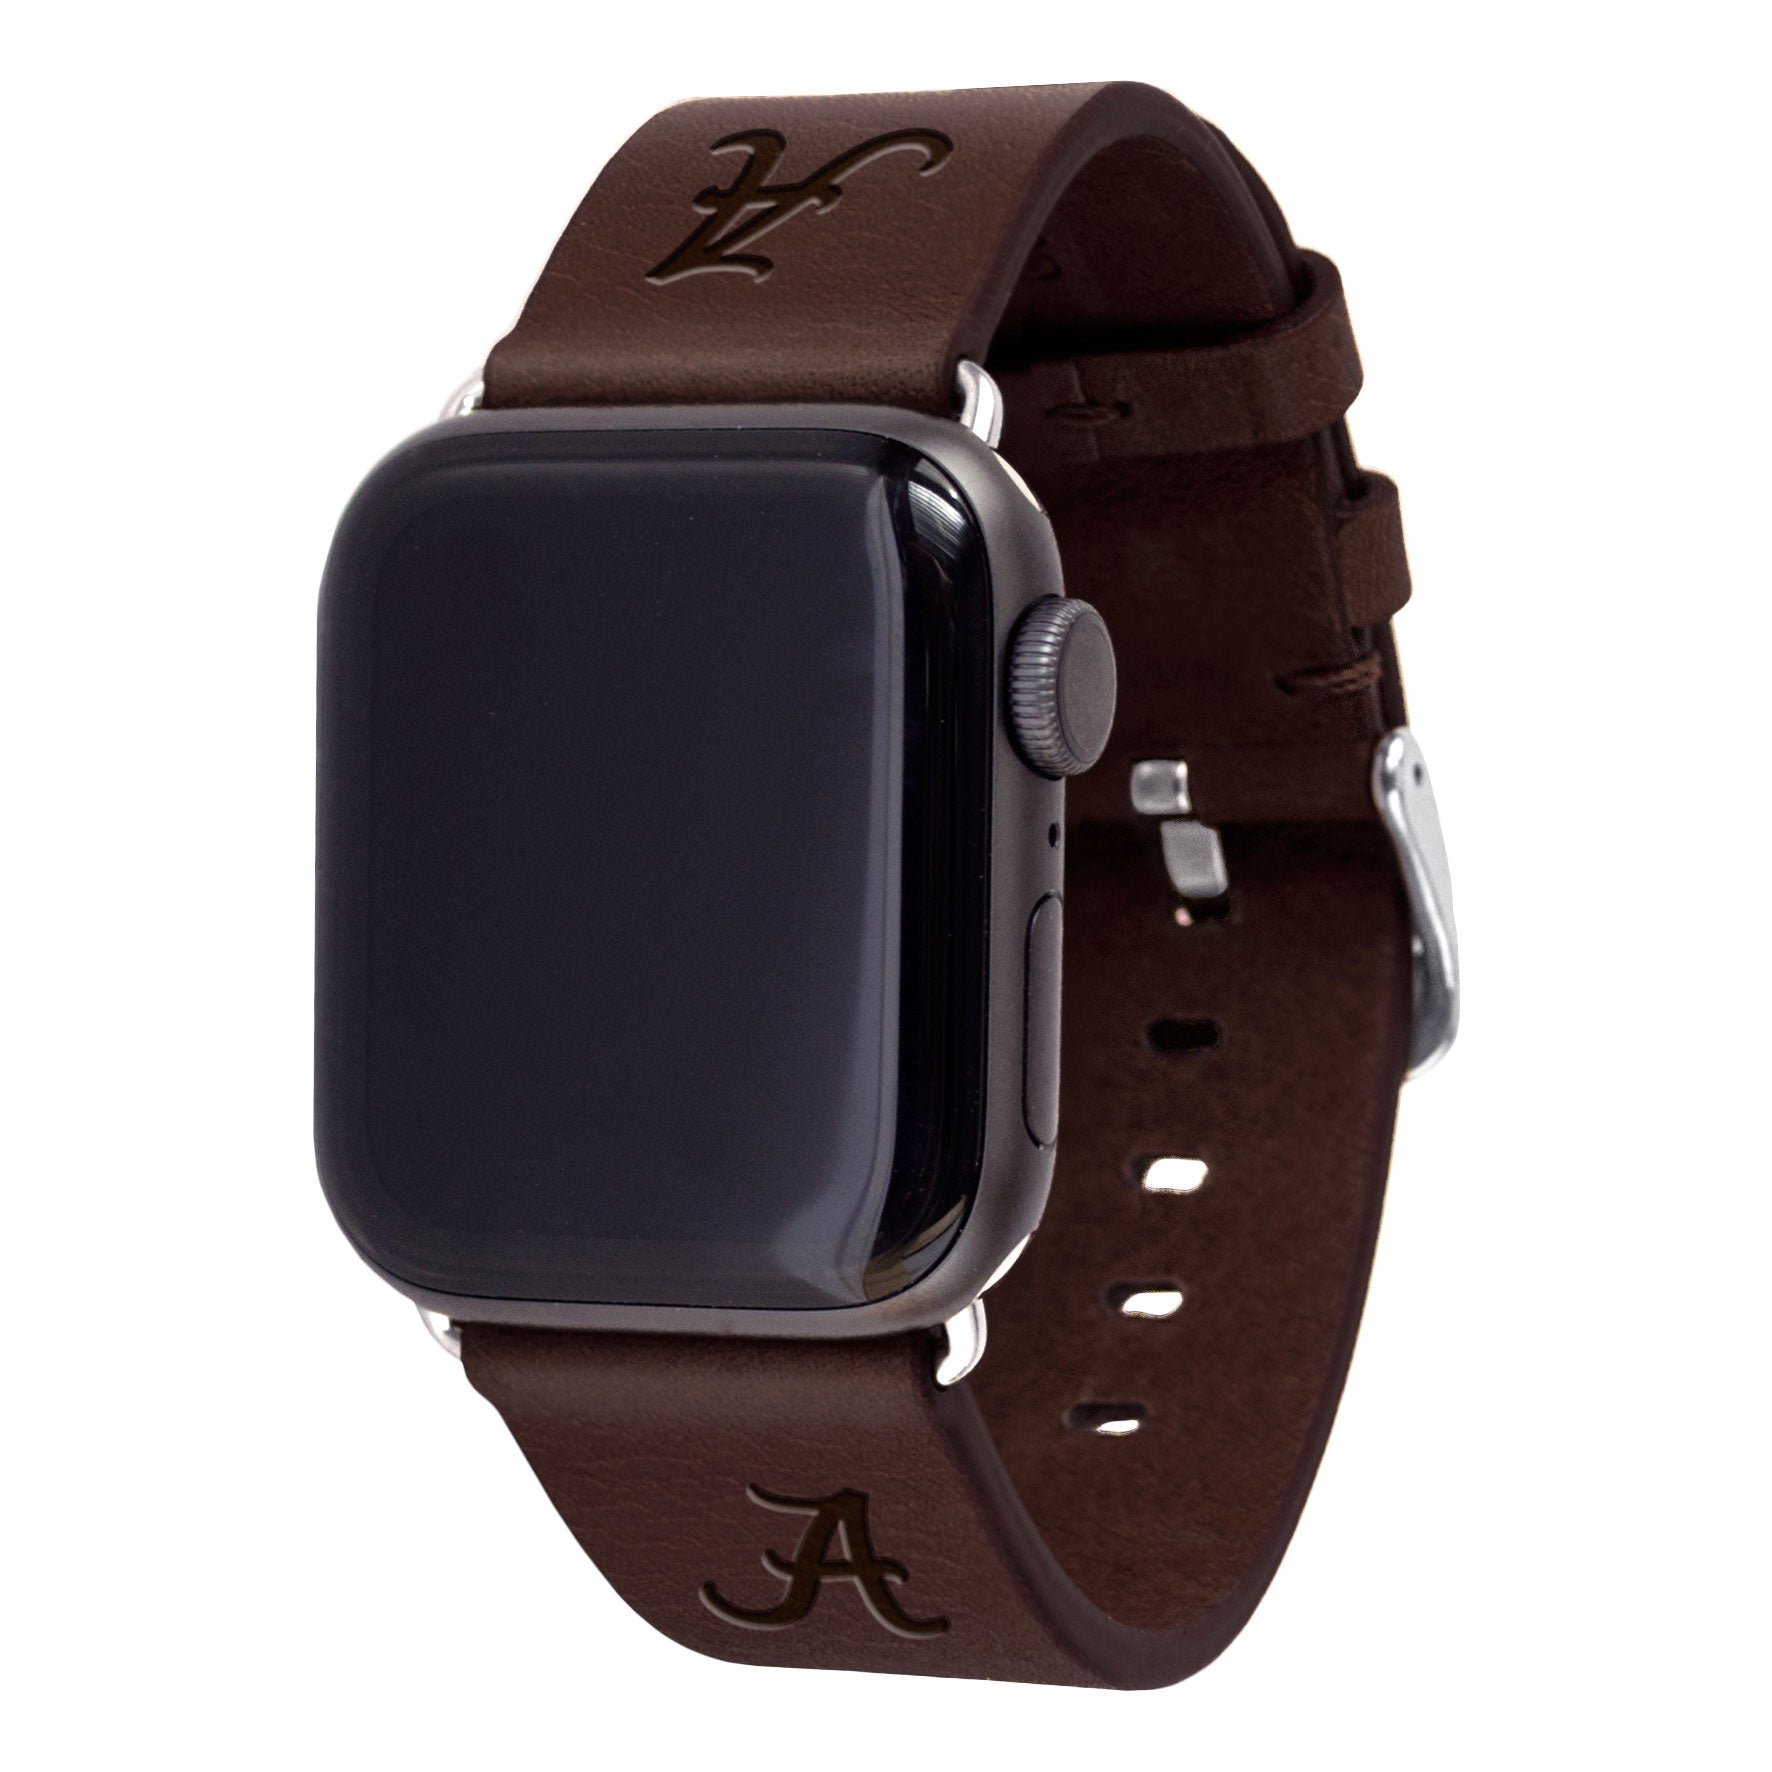 Alabama Crimson Tide Leather Apple Watch Band-AffinityBands